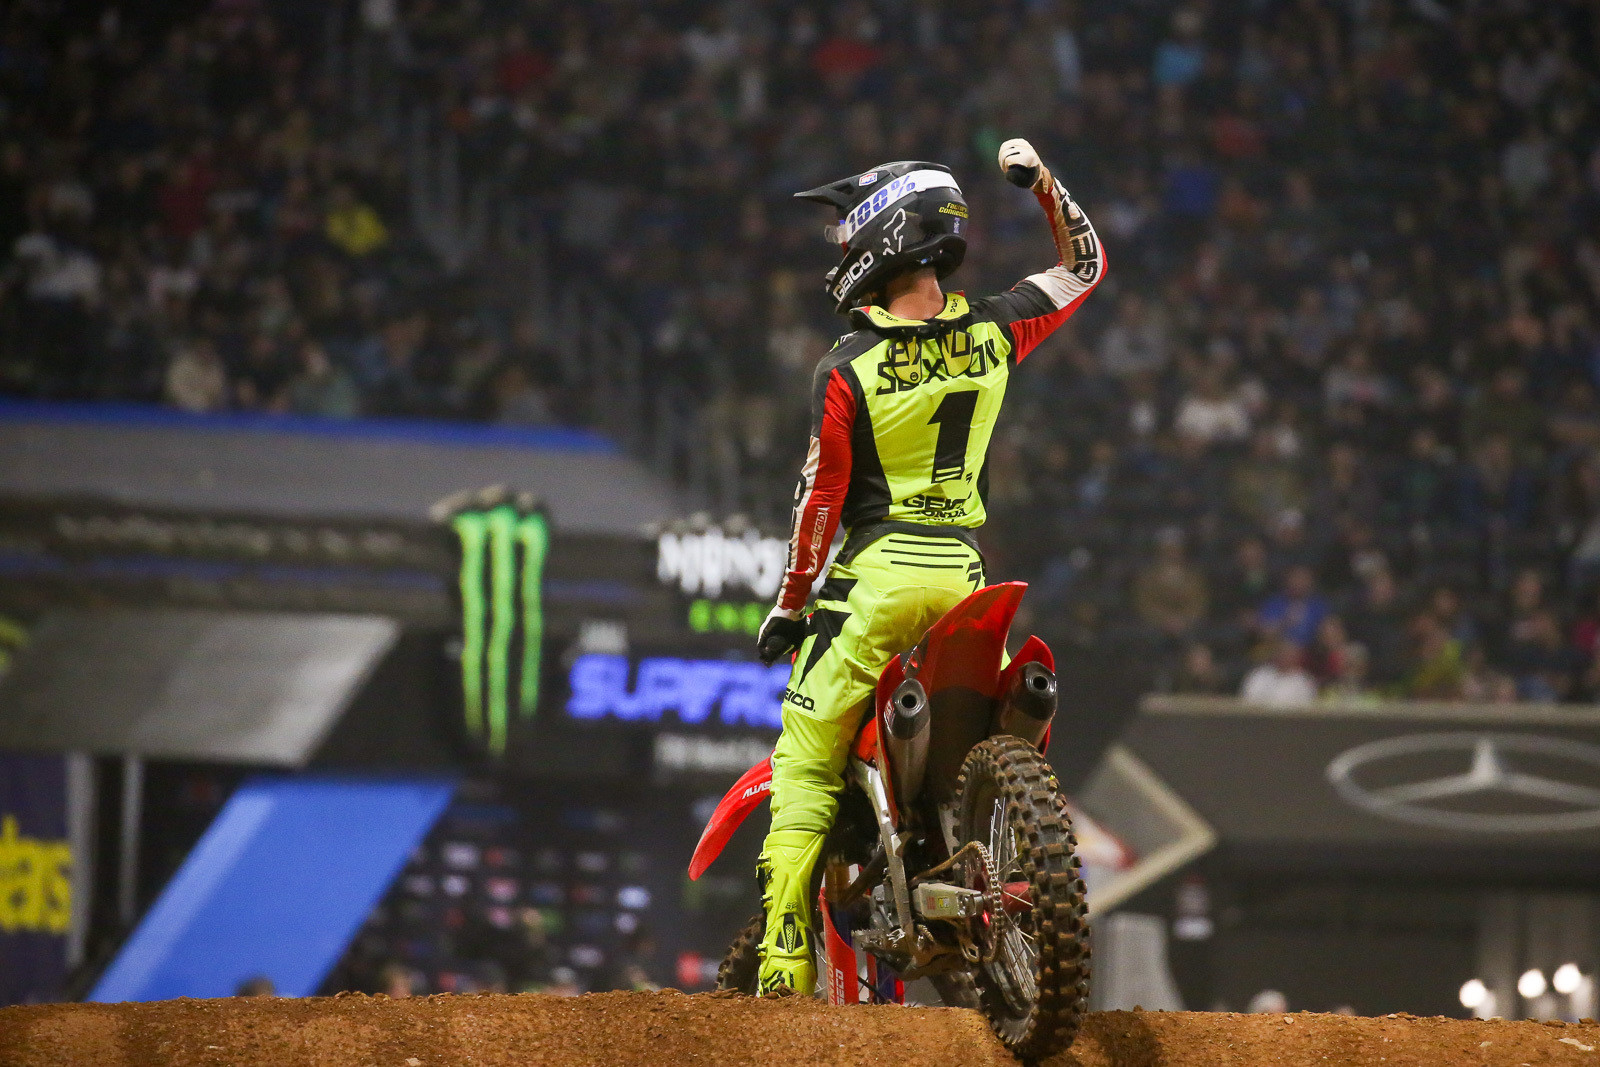 Chase Sexton will make his 450 SX debut in mid-January.